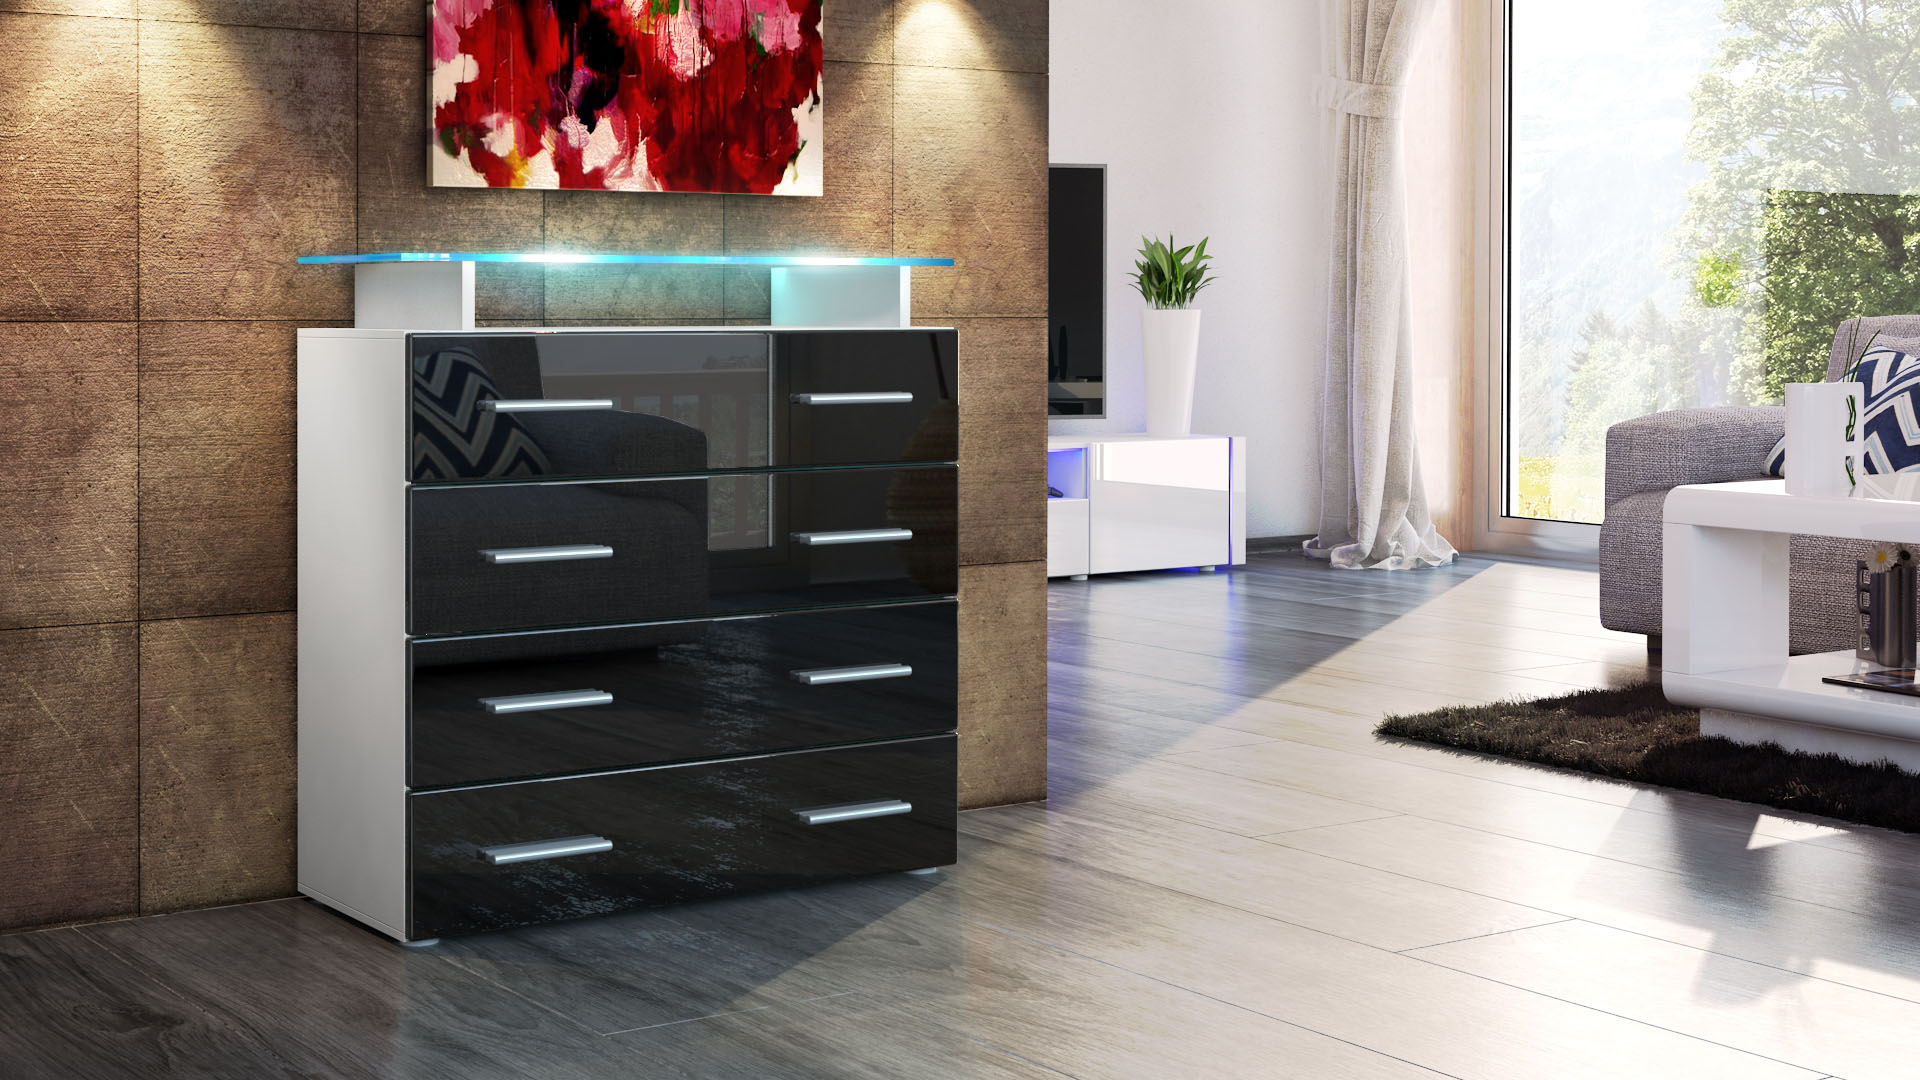 kommode nussbaum schwarz hochglanz heimdesign. Black Bedroom Furniture Sets. Home Design Ideas